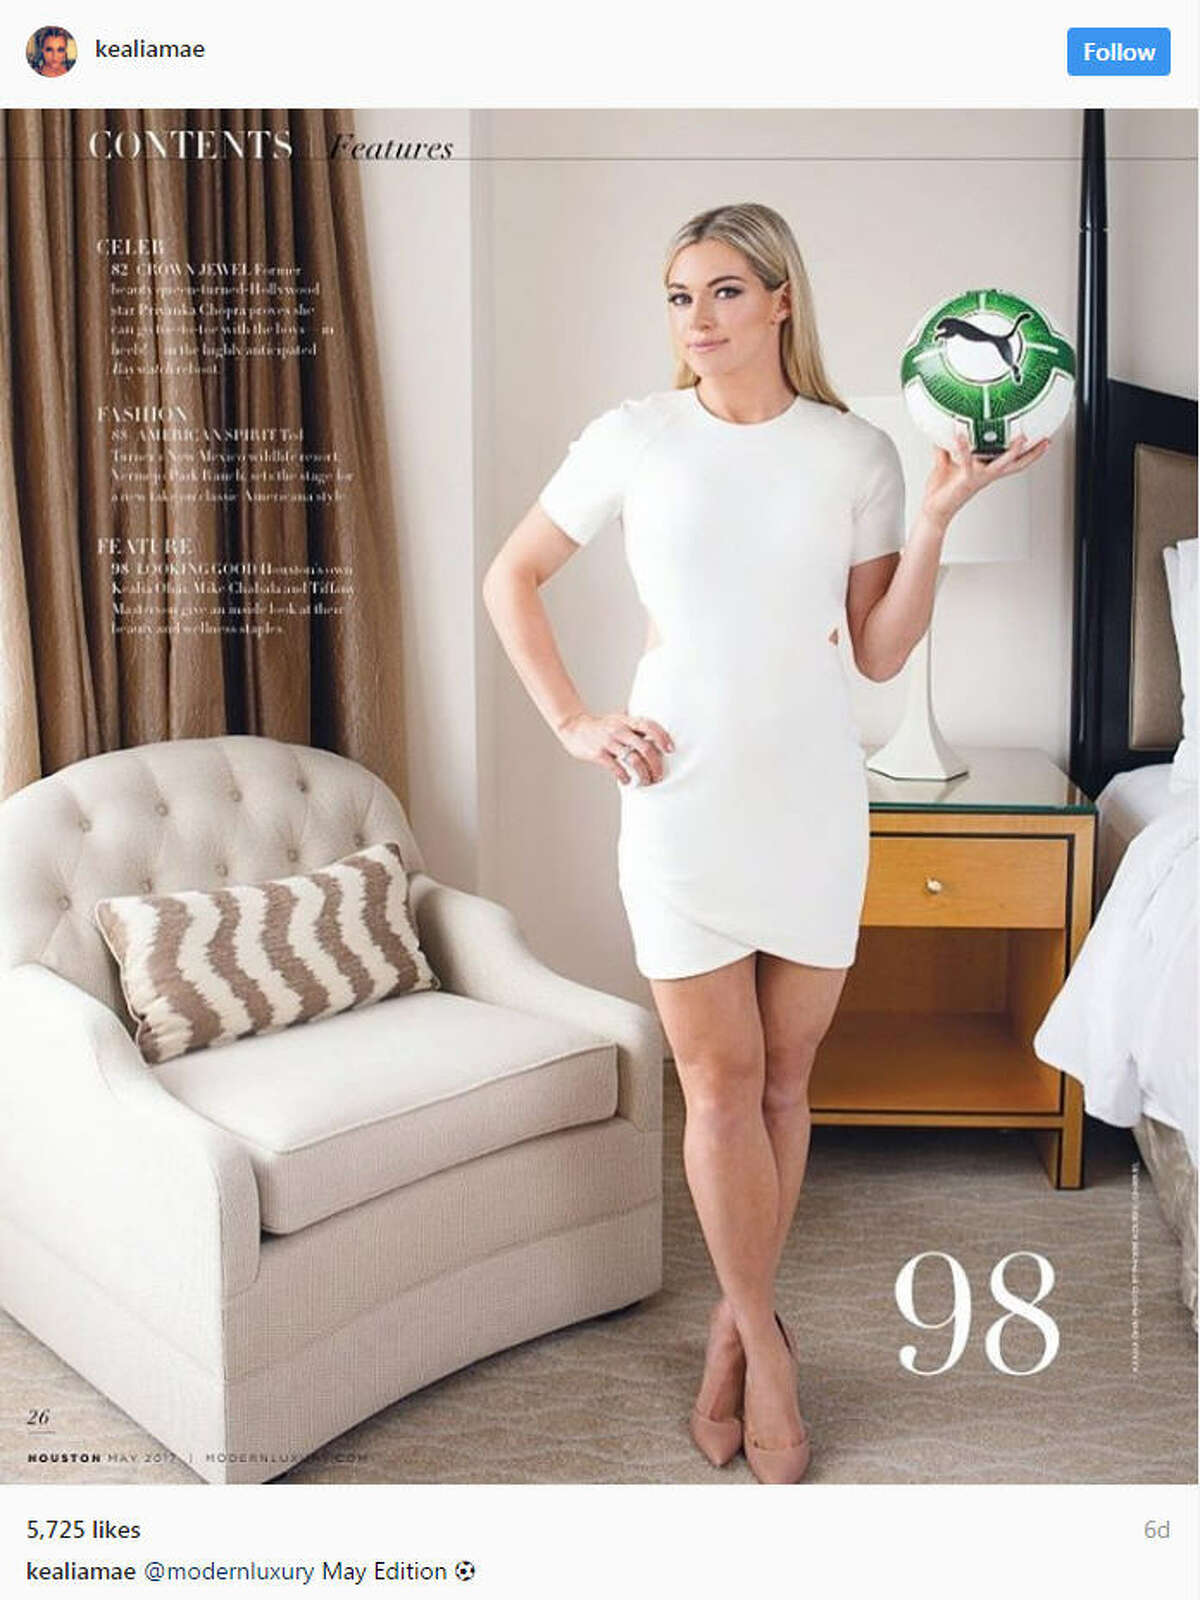 Dash soccer star Kealia Ohai is featured in Modern Luxury Houston's May edition. The 25-year-old shares her beauty secrets with the publication. Continue clicking to see the things to know about Kealia Ohai.Source: Instagram